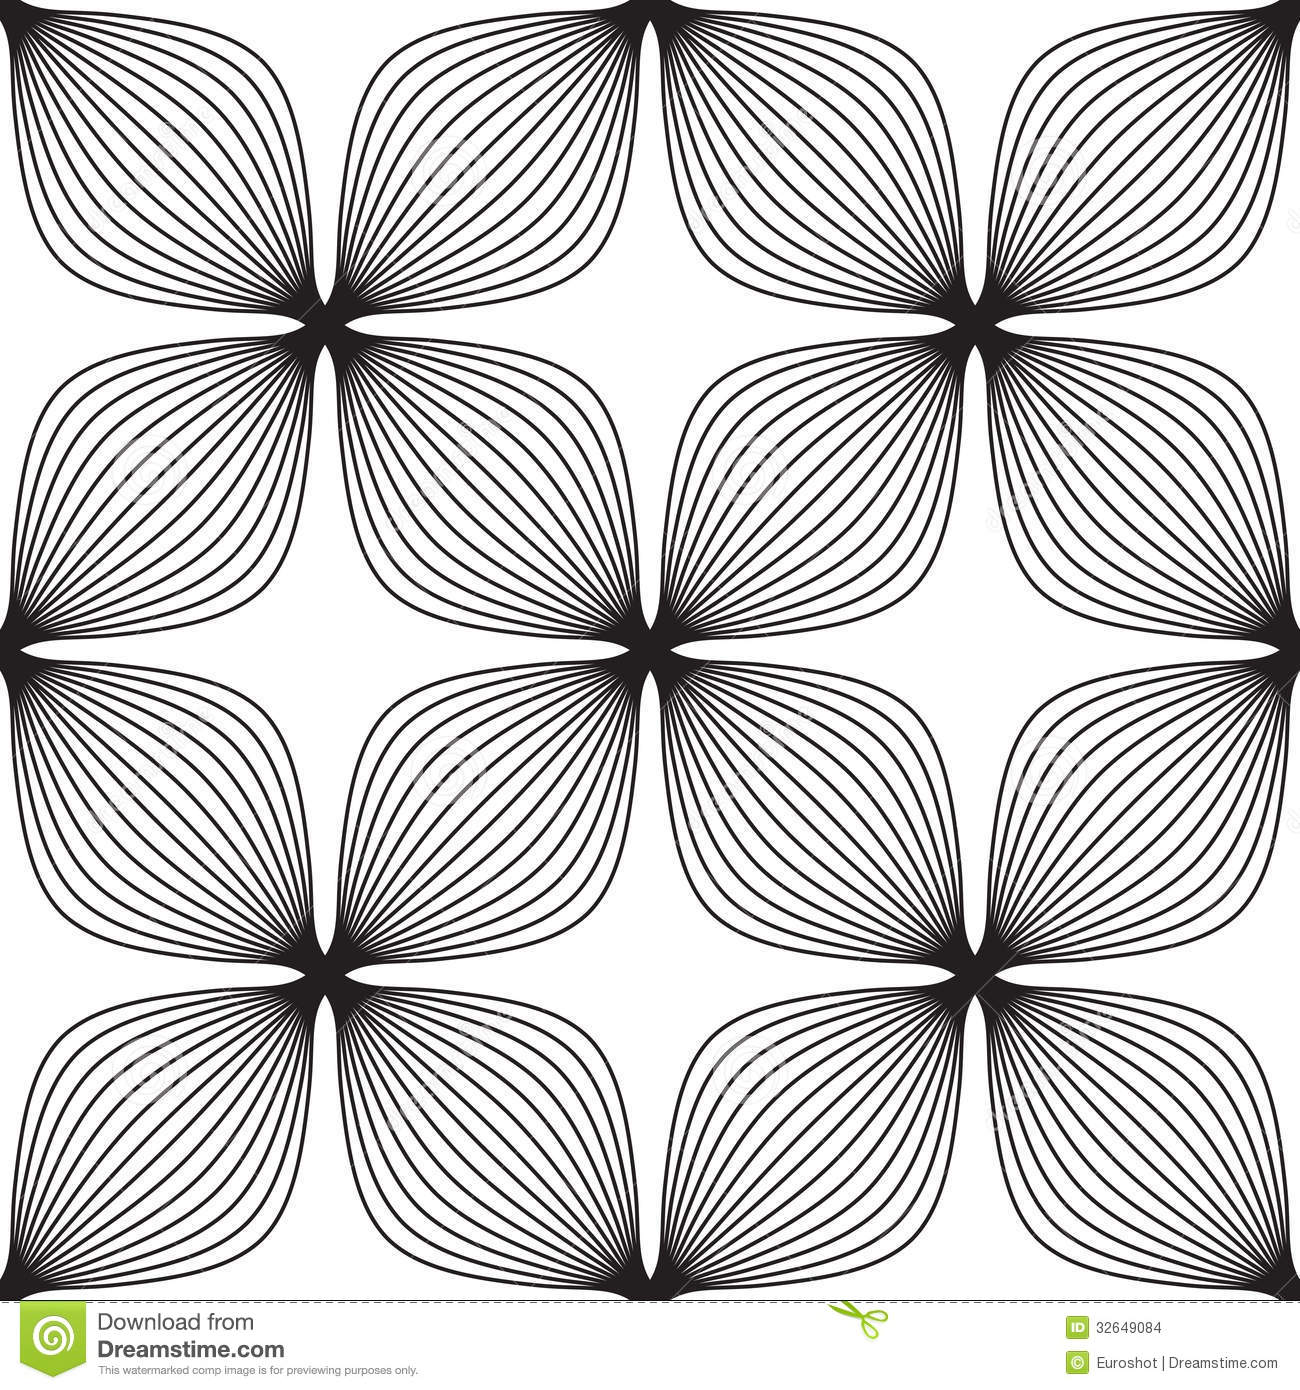 Pity, Free abstract floral pattern agree